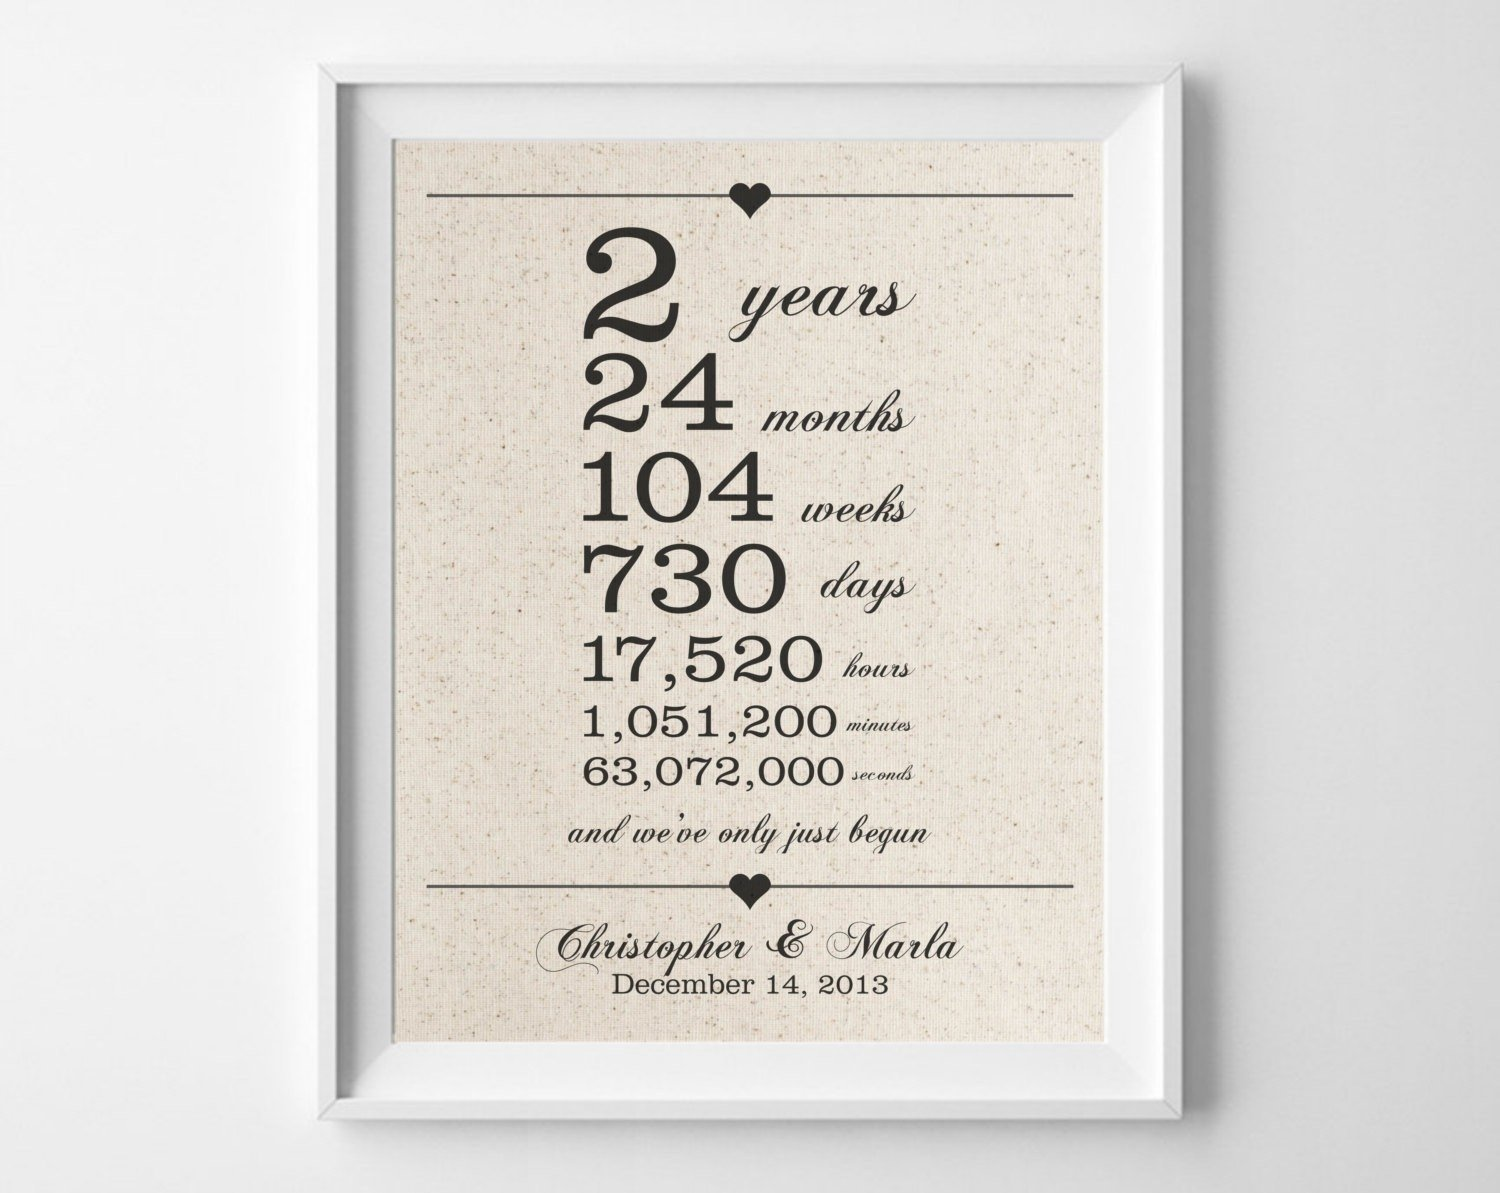 14 wedding anniversary gift ideas new 2 years to her cotton